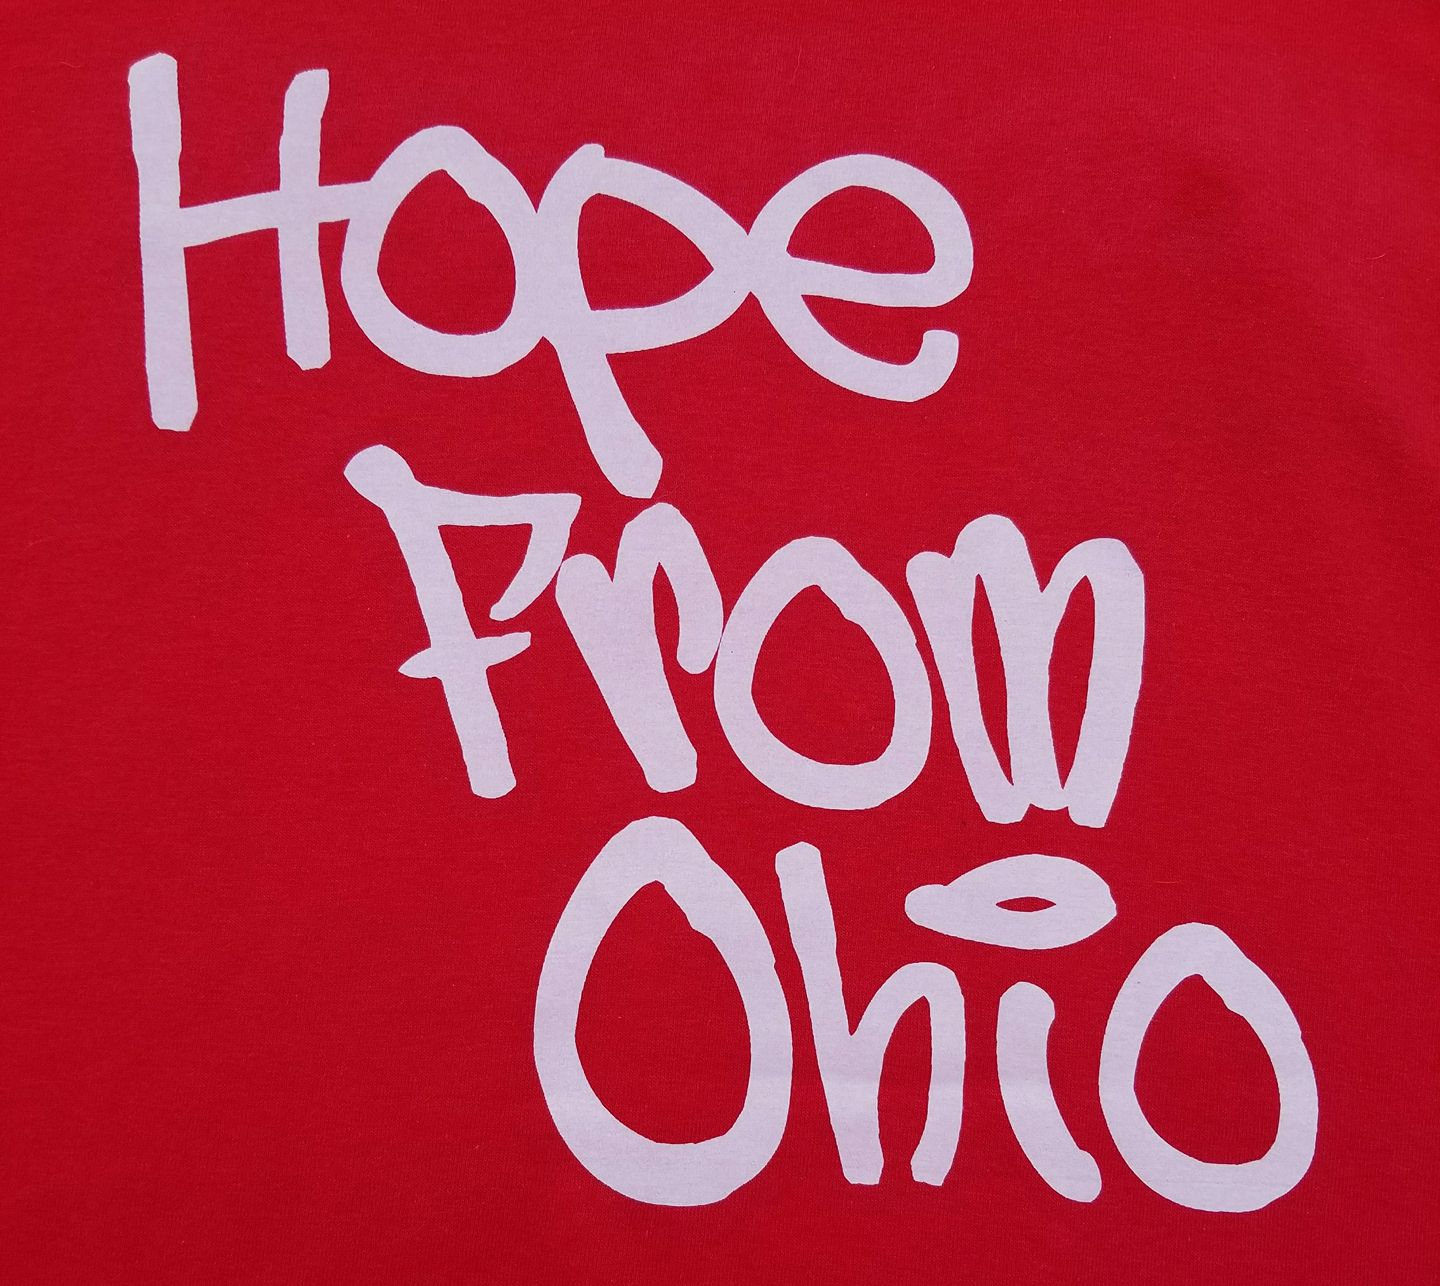 Hope From Ohio